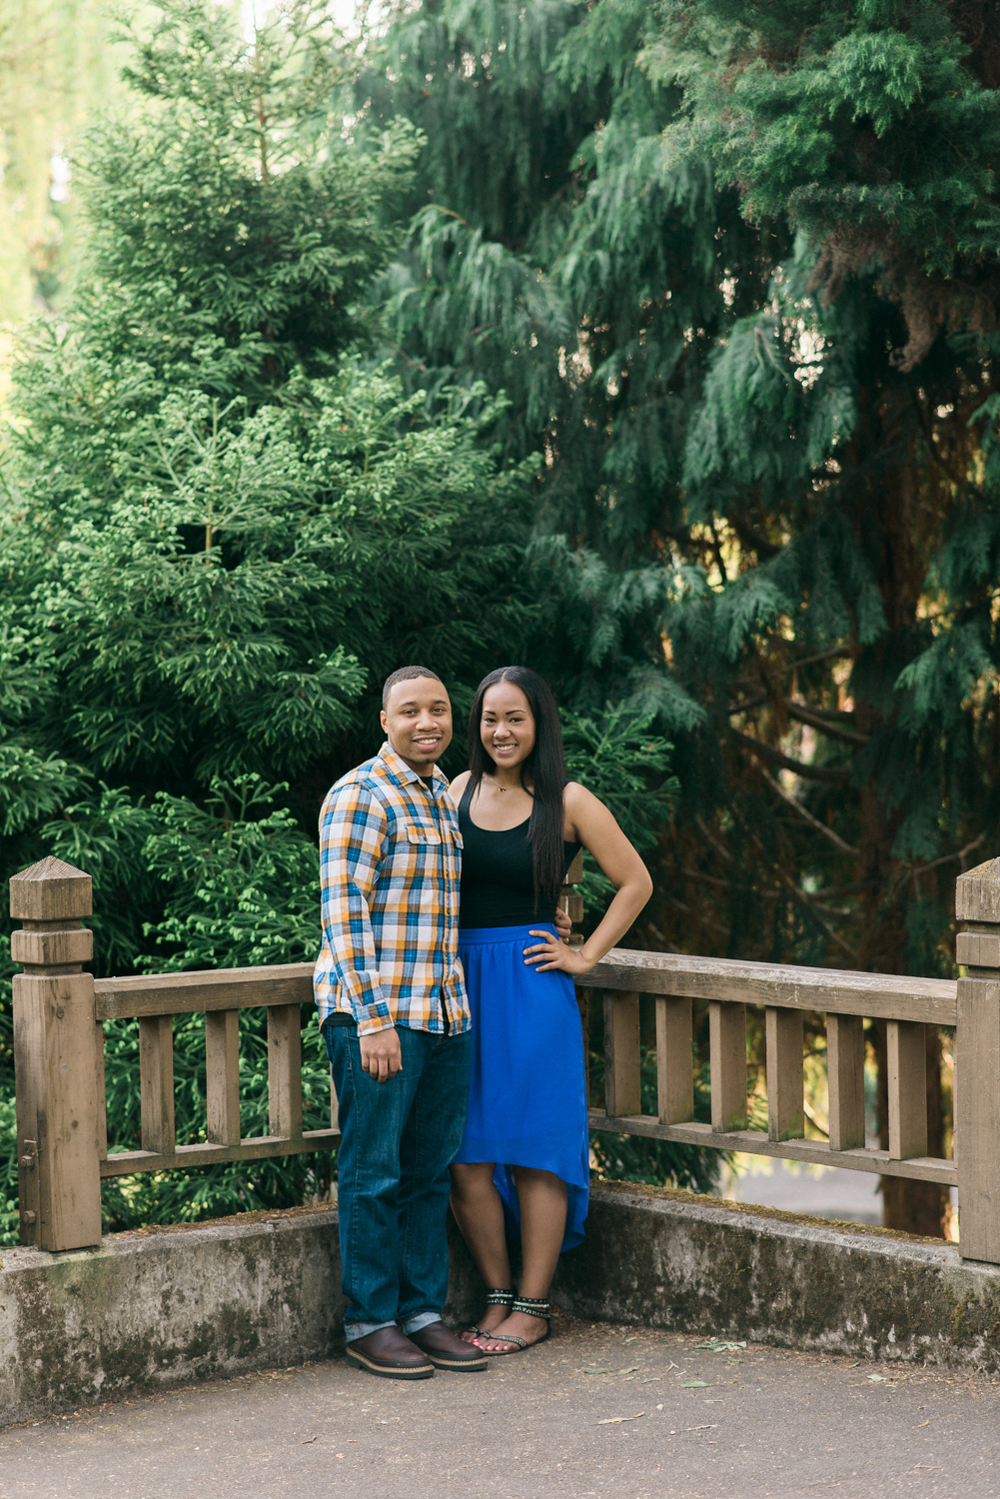 portland-engagement-photographer-wsu-graduation-portrait-crystal-springs-rhododendron-garden-shelley-marie-photo-30